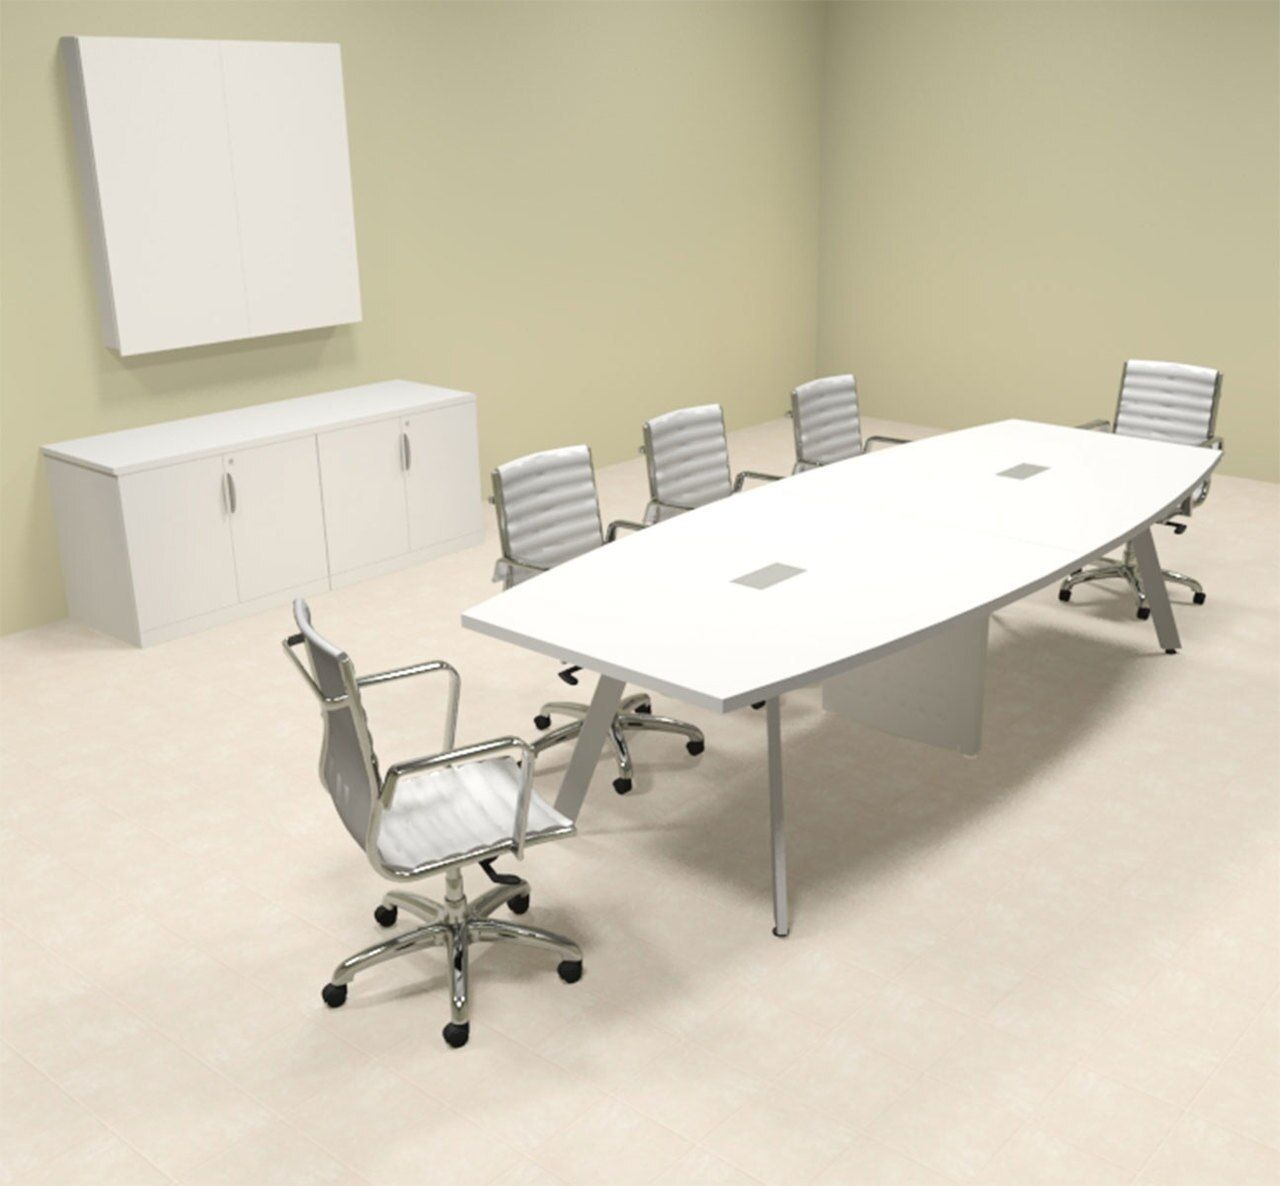 Modern Boat Shaped 10 Feet Conference Table Of Con Cv8 In 2020 Conference Table Table Modern Conference Table